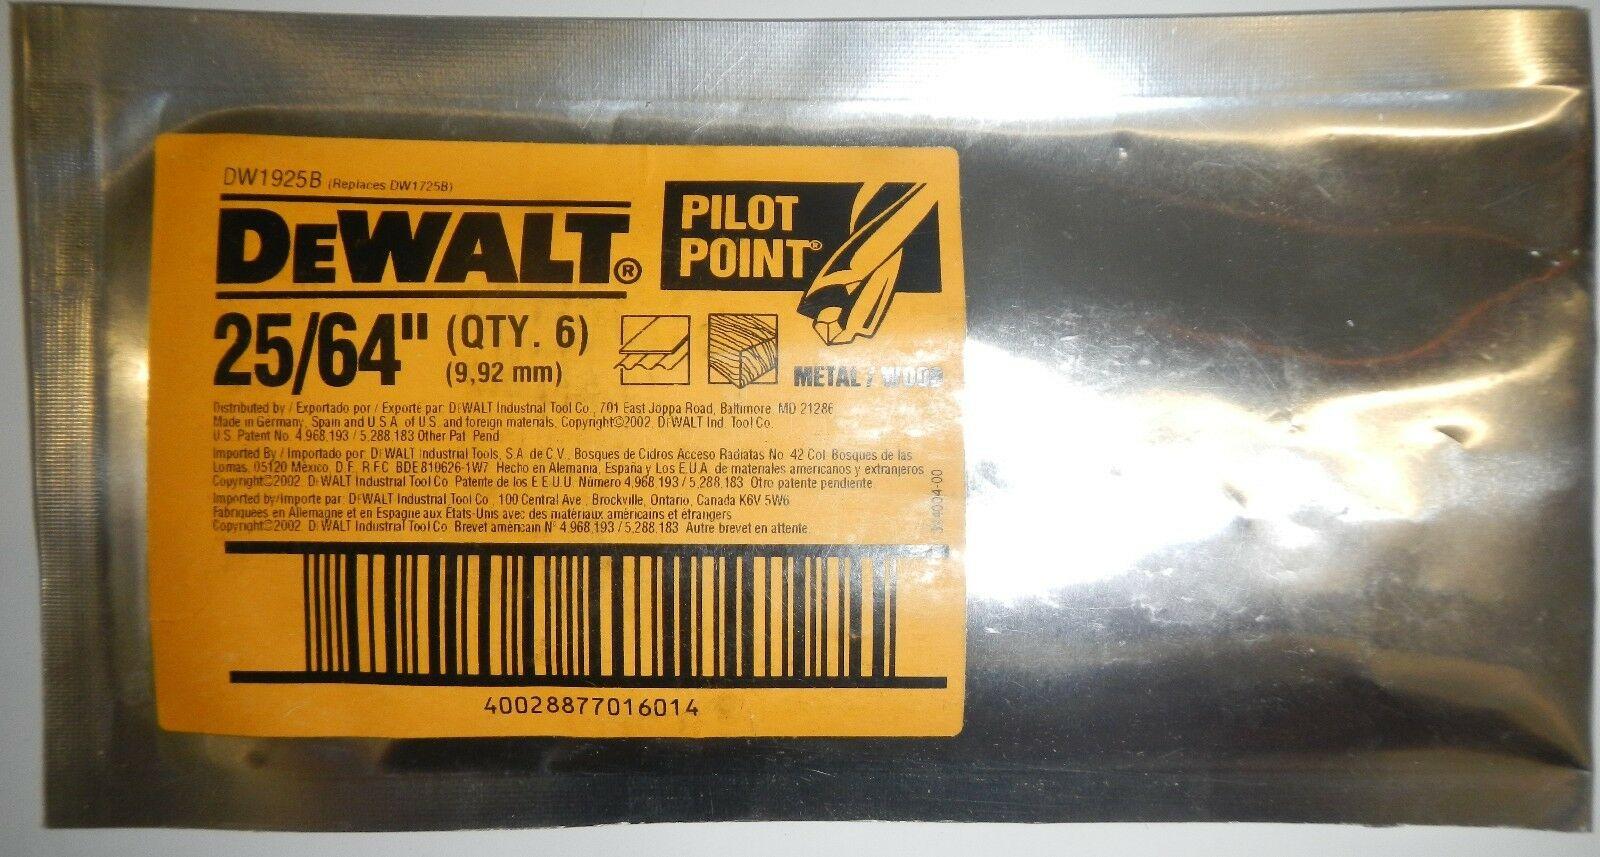 DeWalt DW1925B Pilot Point 25/64 For Metal/Wood Qty. 6